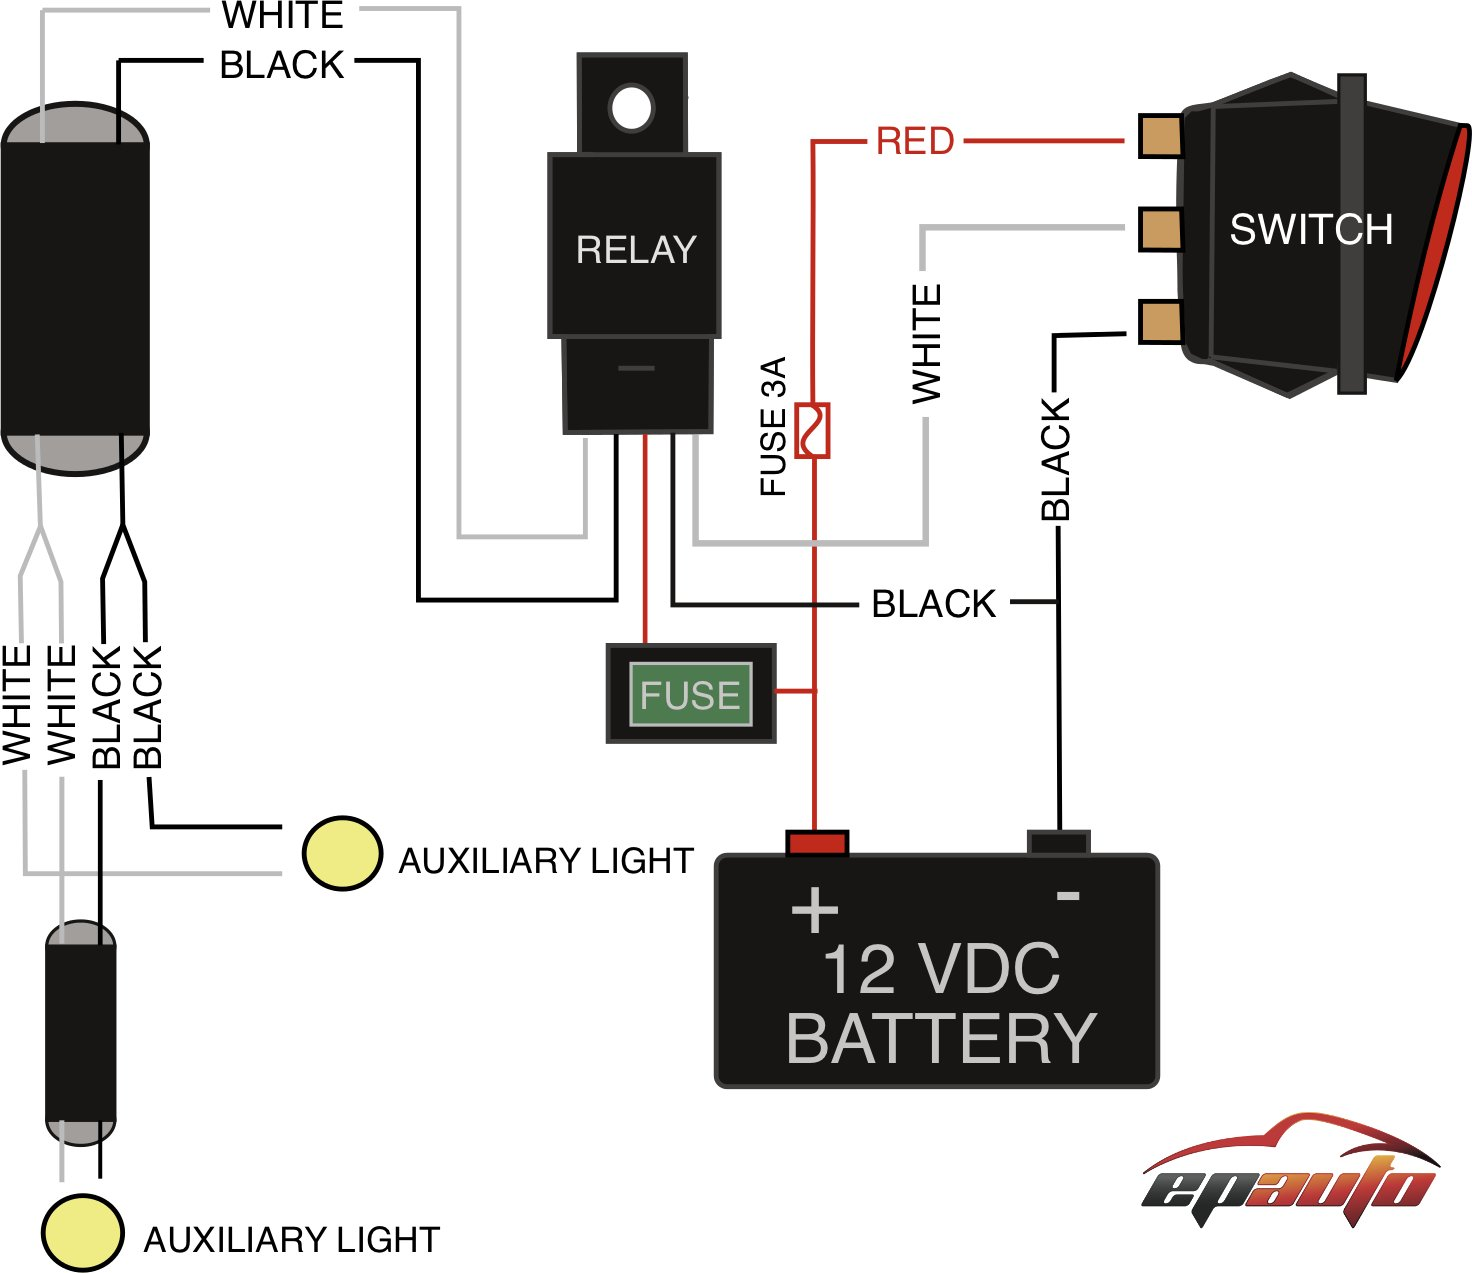 Led Relay Wiring Diagram Archive Of Automotive With 3 Pin Flasher On 5 Off Road Lights Harness Simple Rh David Huggett Co Uk Bar